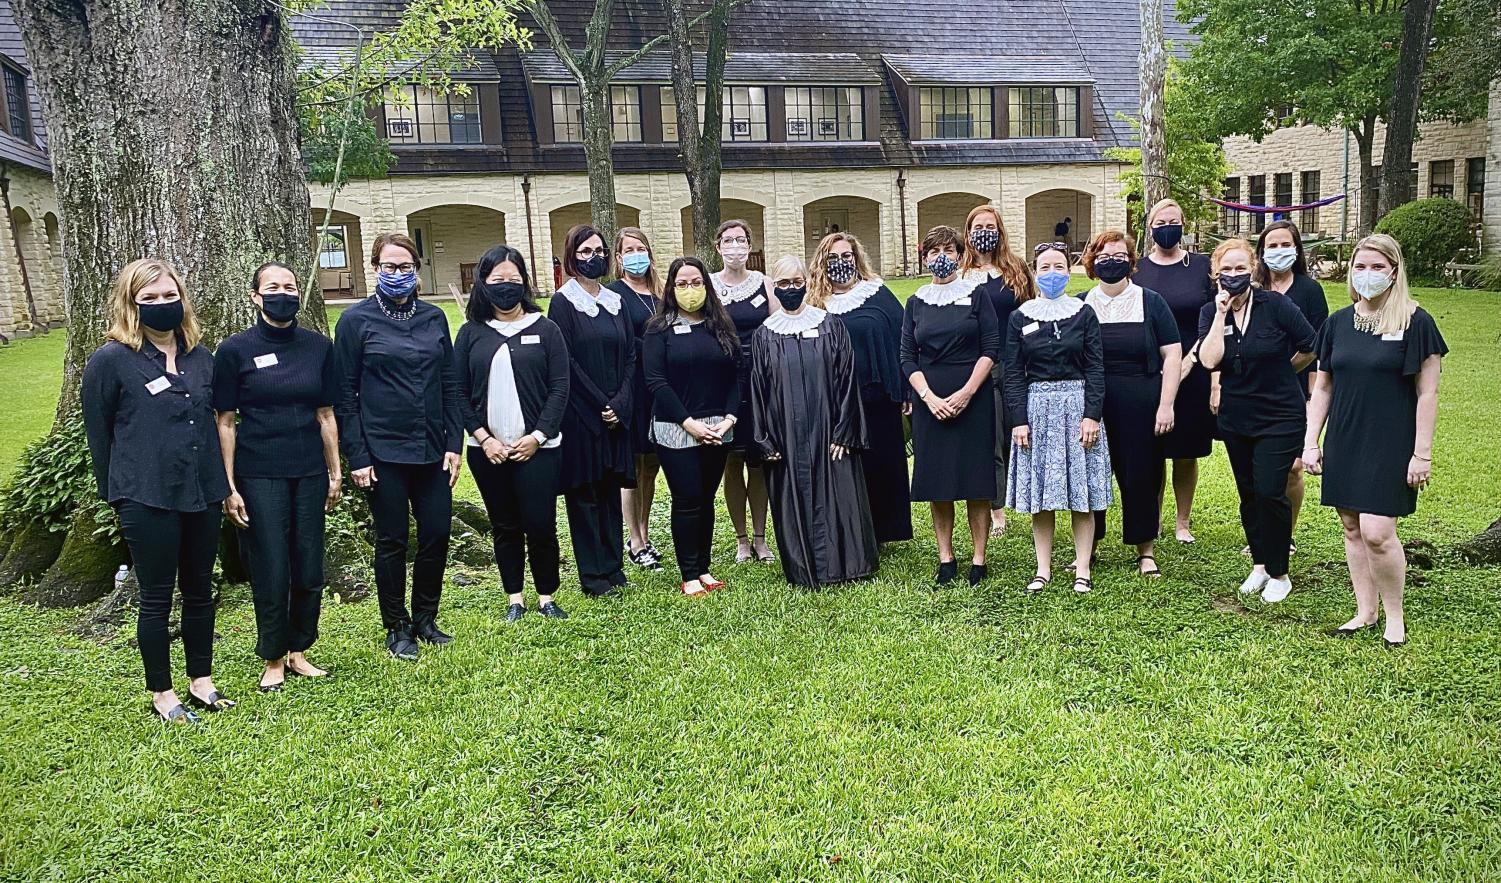 Faculty members across departments wore collars and black attire to school on Sept. 21 to honor the legacy of Ruth Bader Ginsburg.